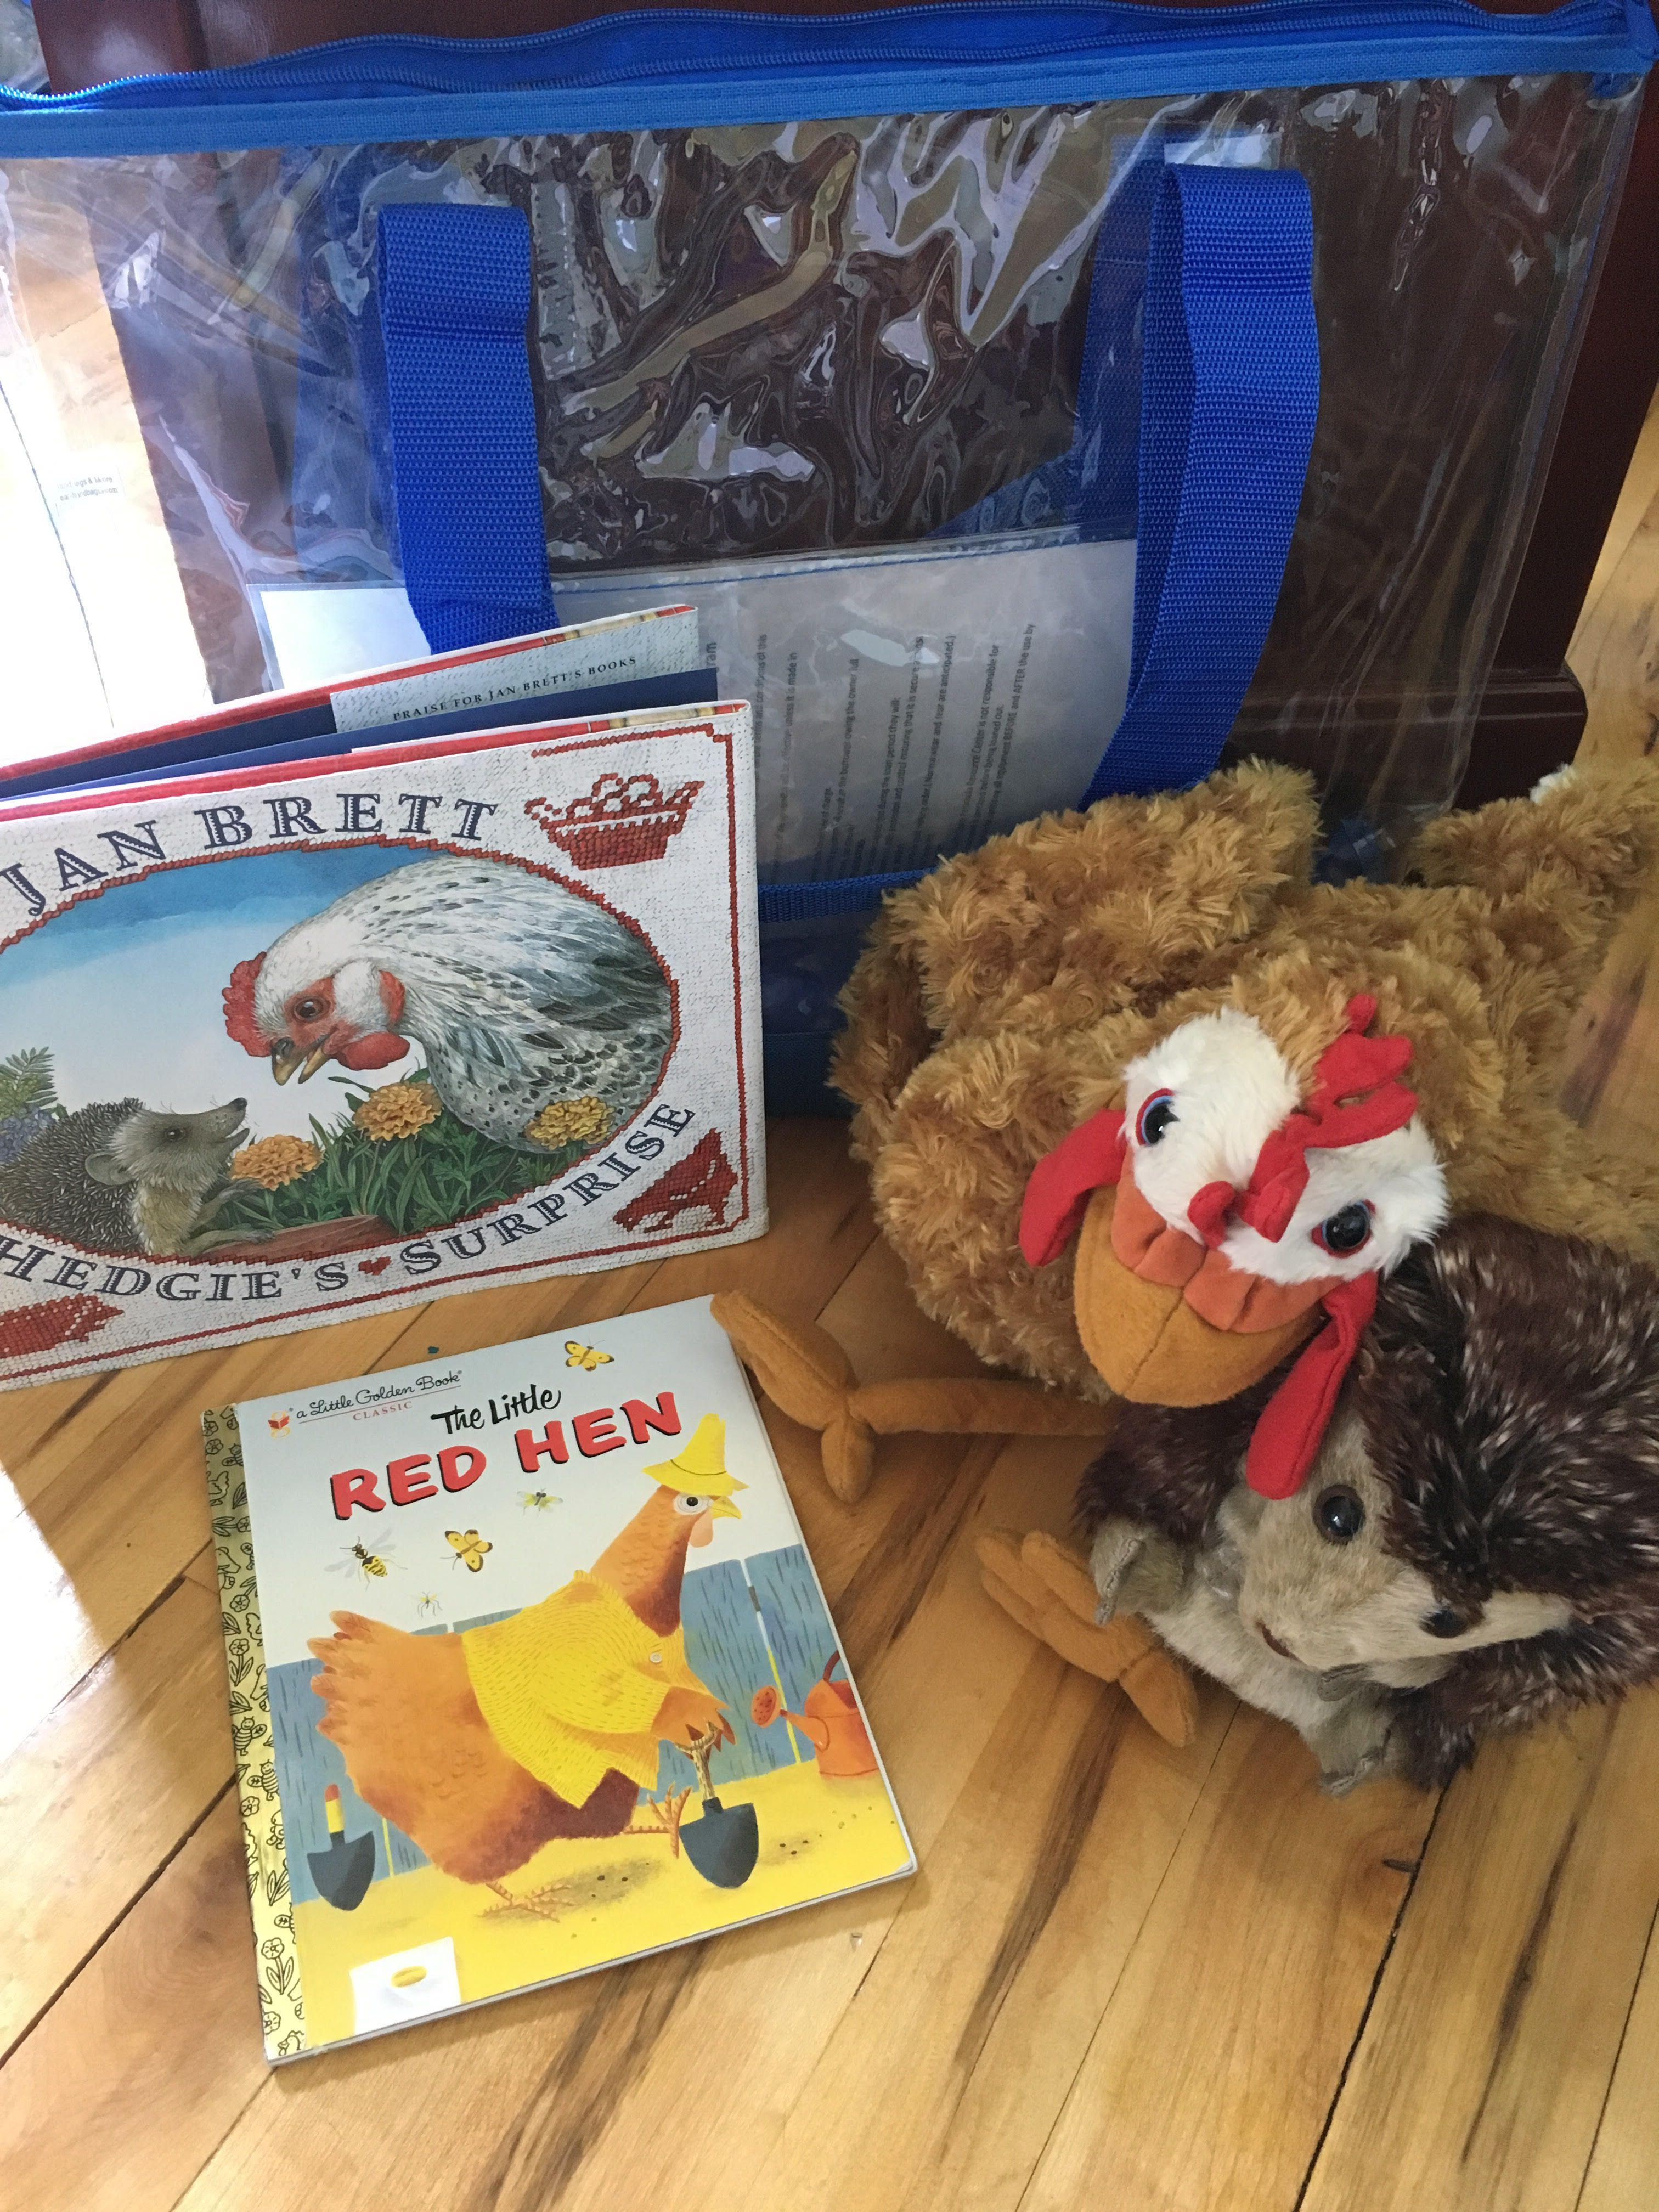 Hen And Hedgehog Books Hedgie S Surprise And Little Red